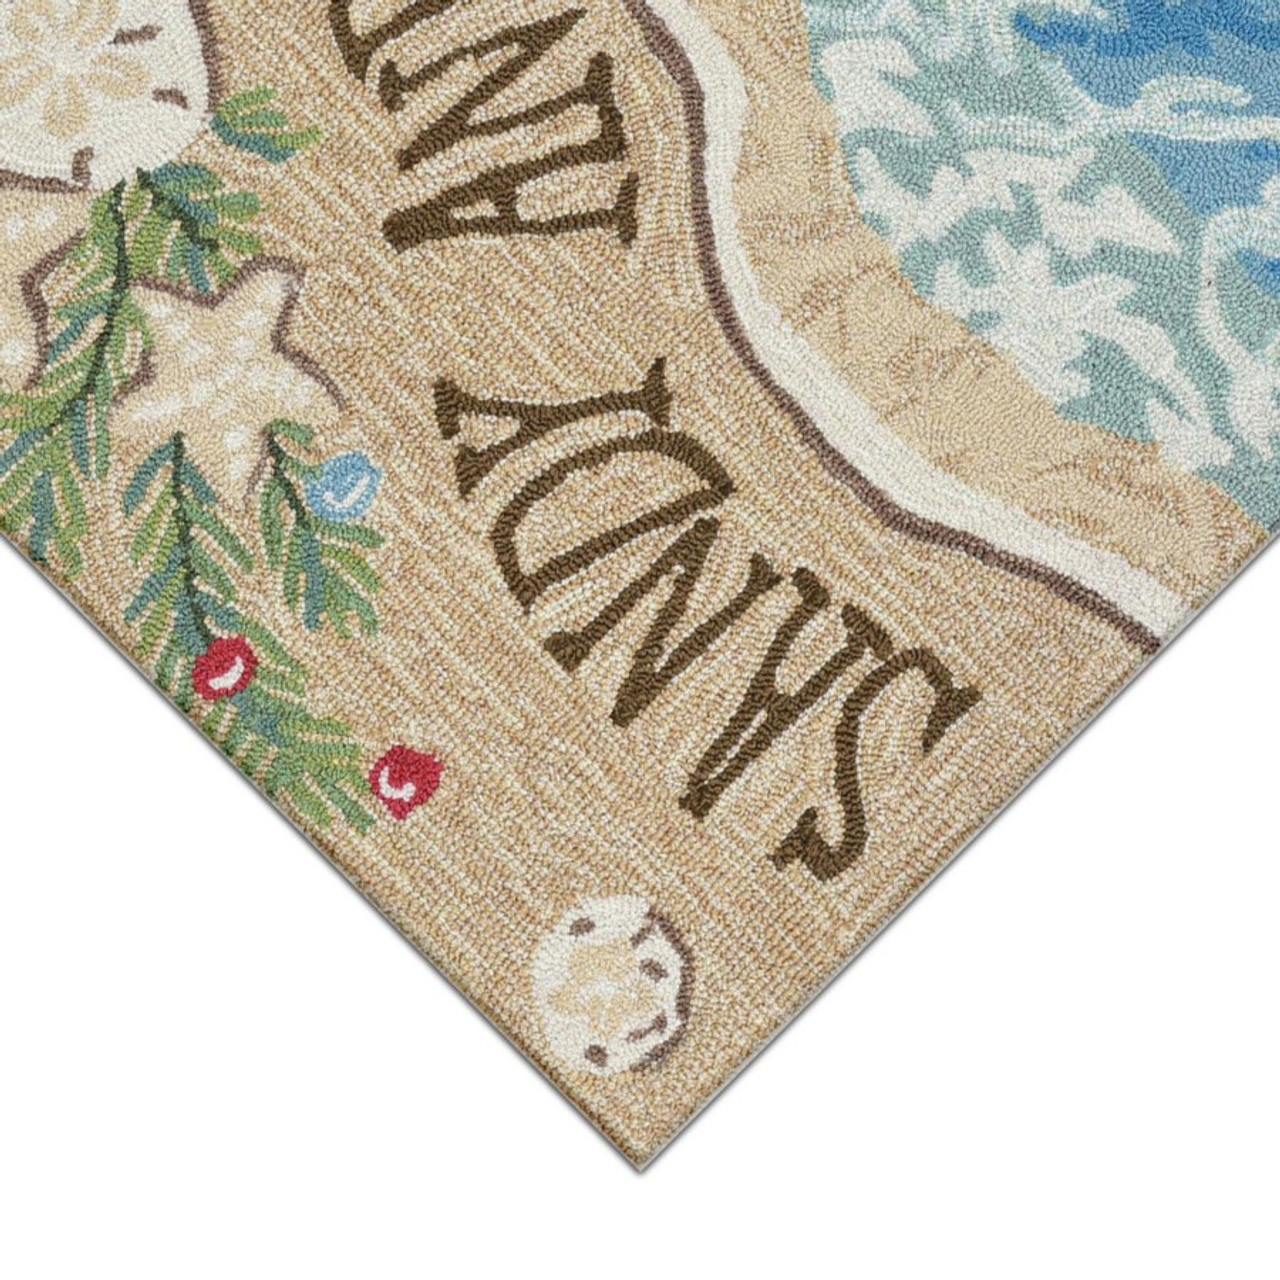 """Frontporch """"Sandy and Bright"""" Indoor/Outdoor Rug - Pile"""